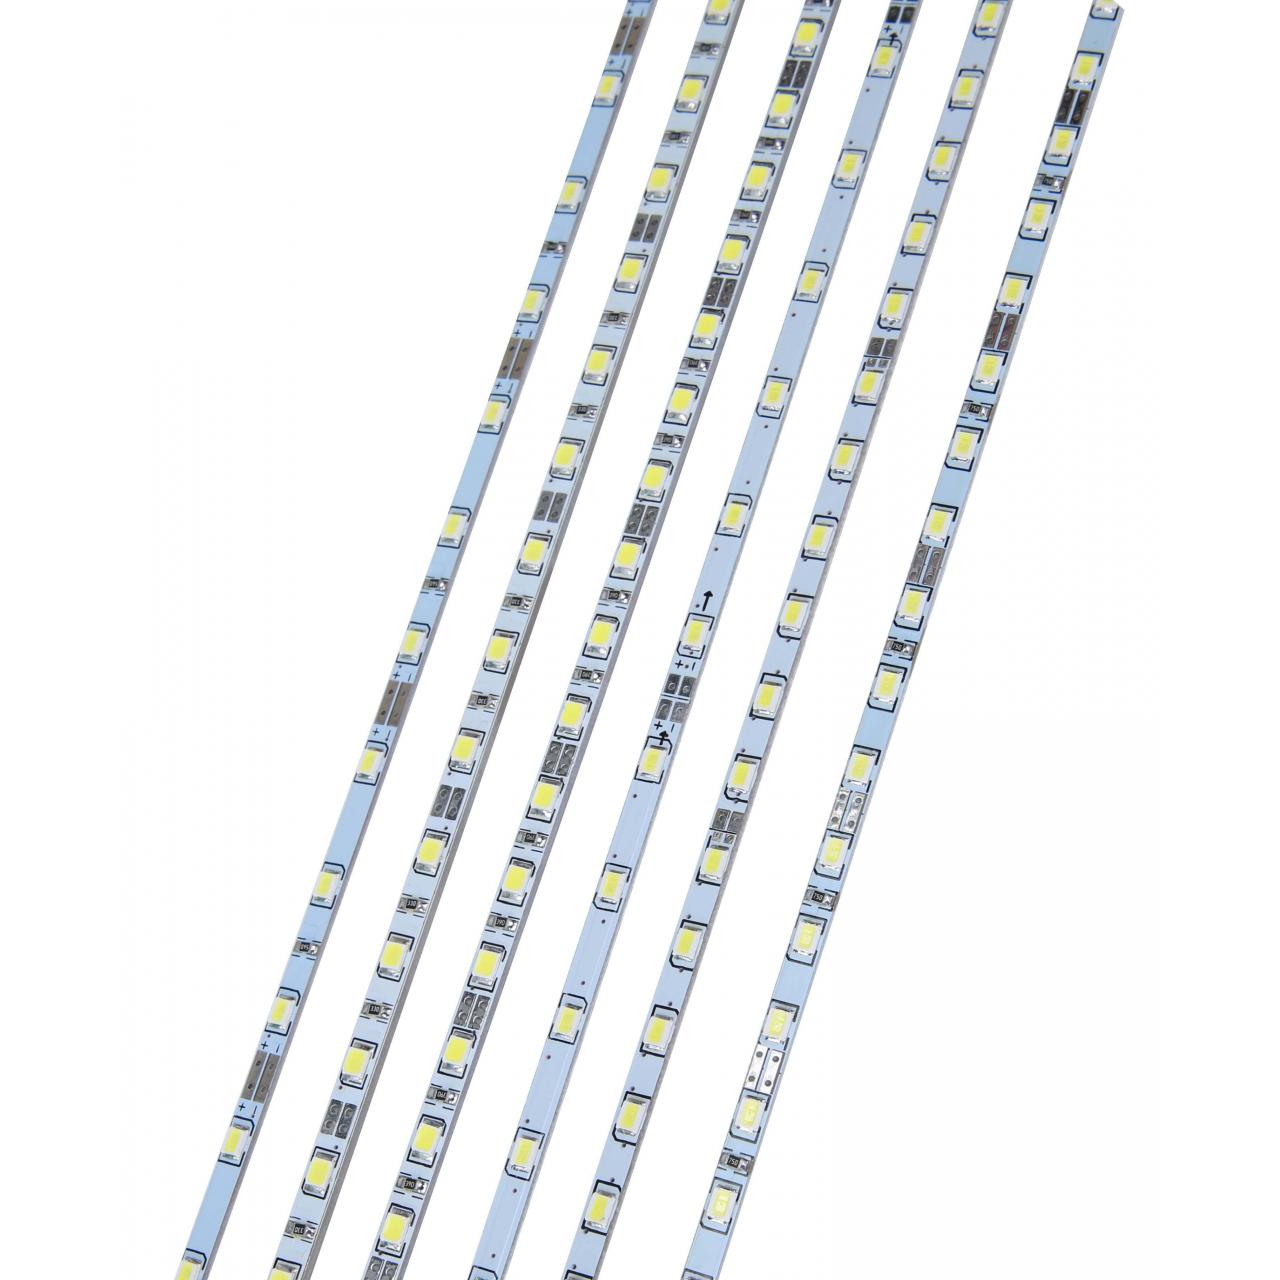 Buy cheap 2835 Edge-lit Rigid Led Tape Bar 90leds/m from wholesalers